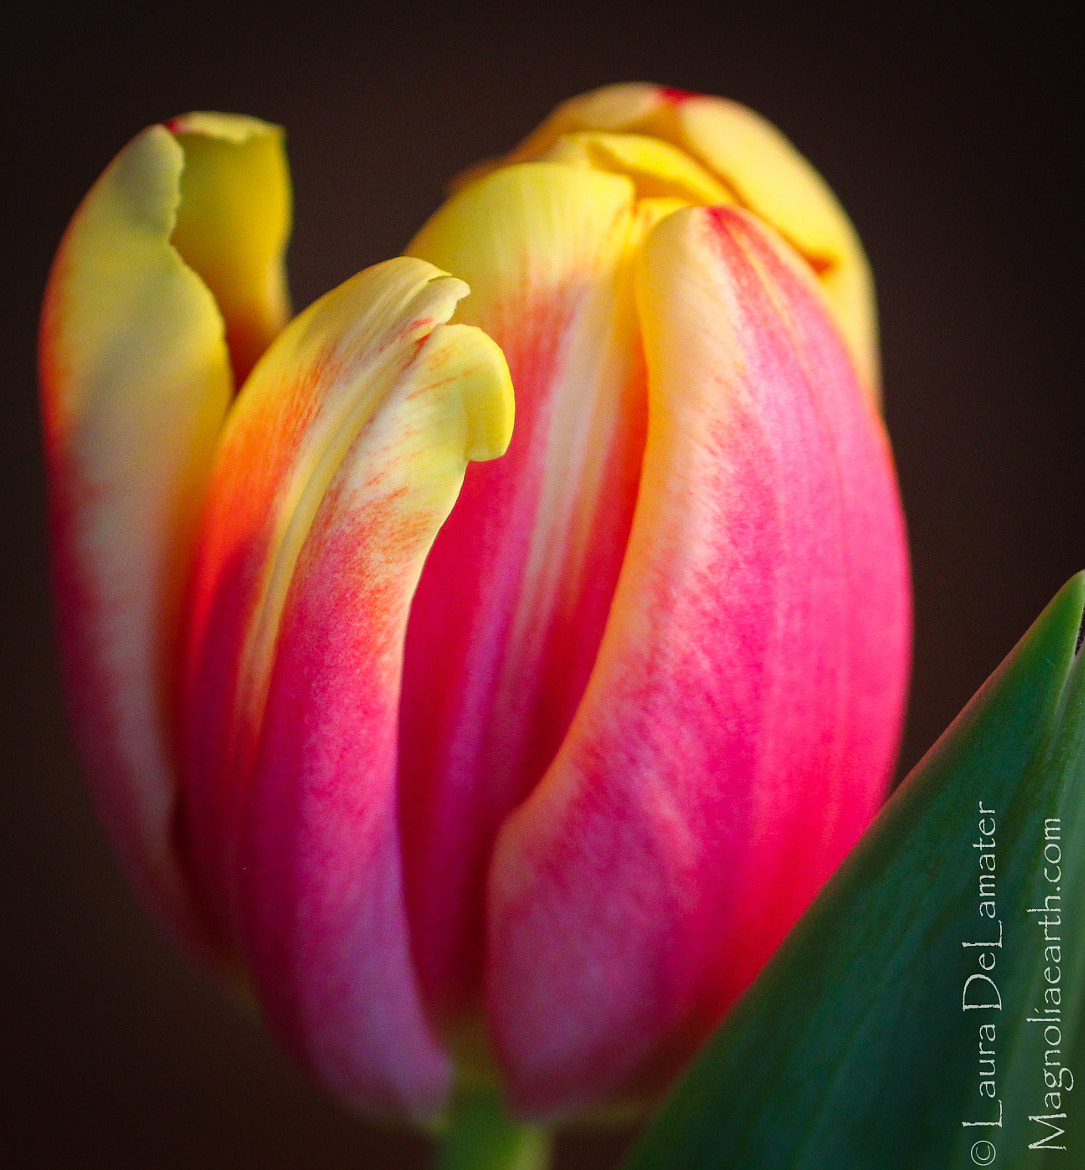 Photograph Countdown to spring! by Laura DeLamater on 500px